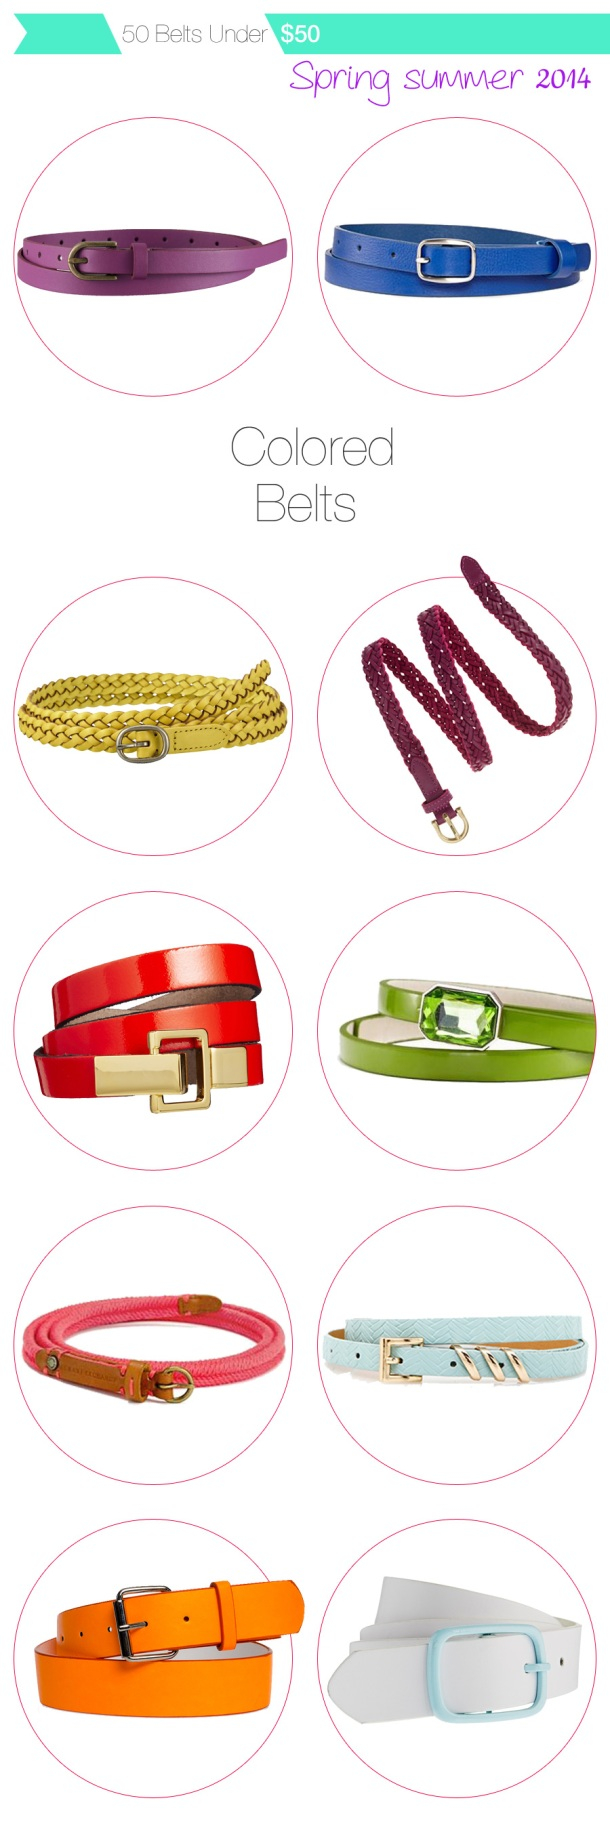 50-belts-under-$50-spring-summer-2014-colored